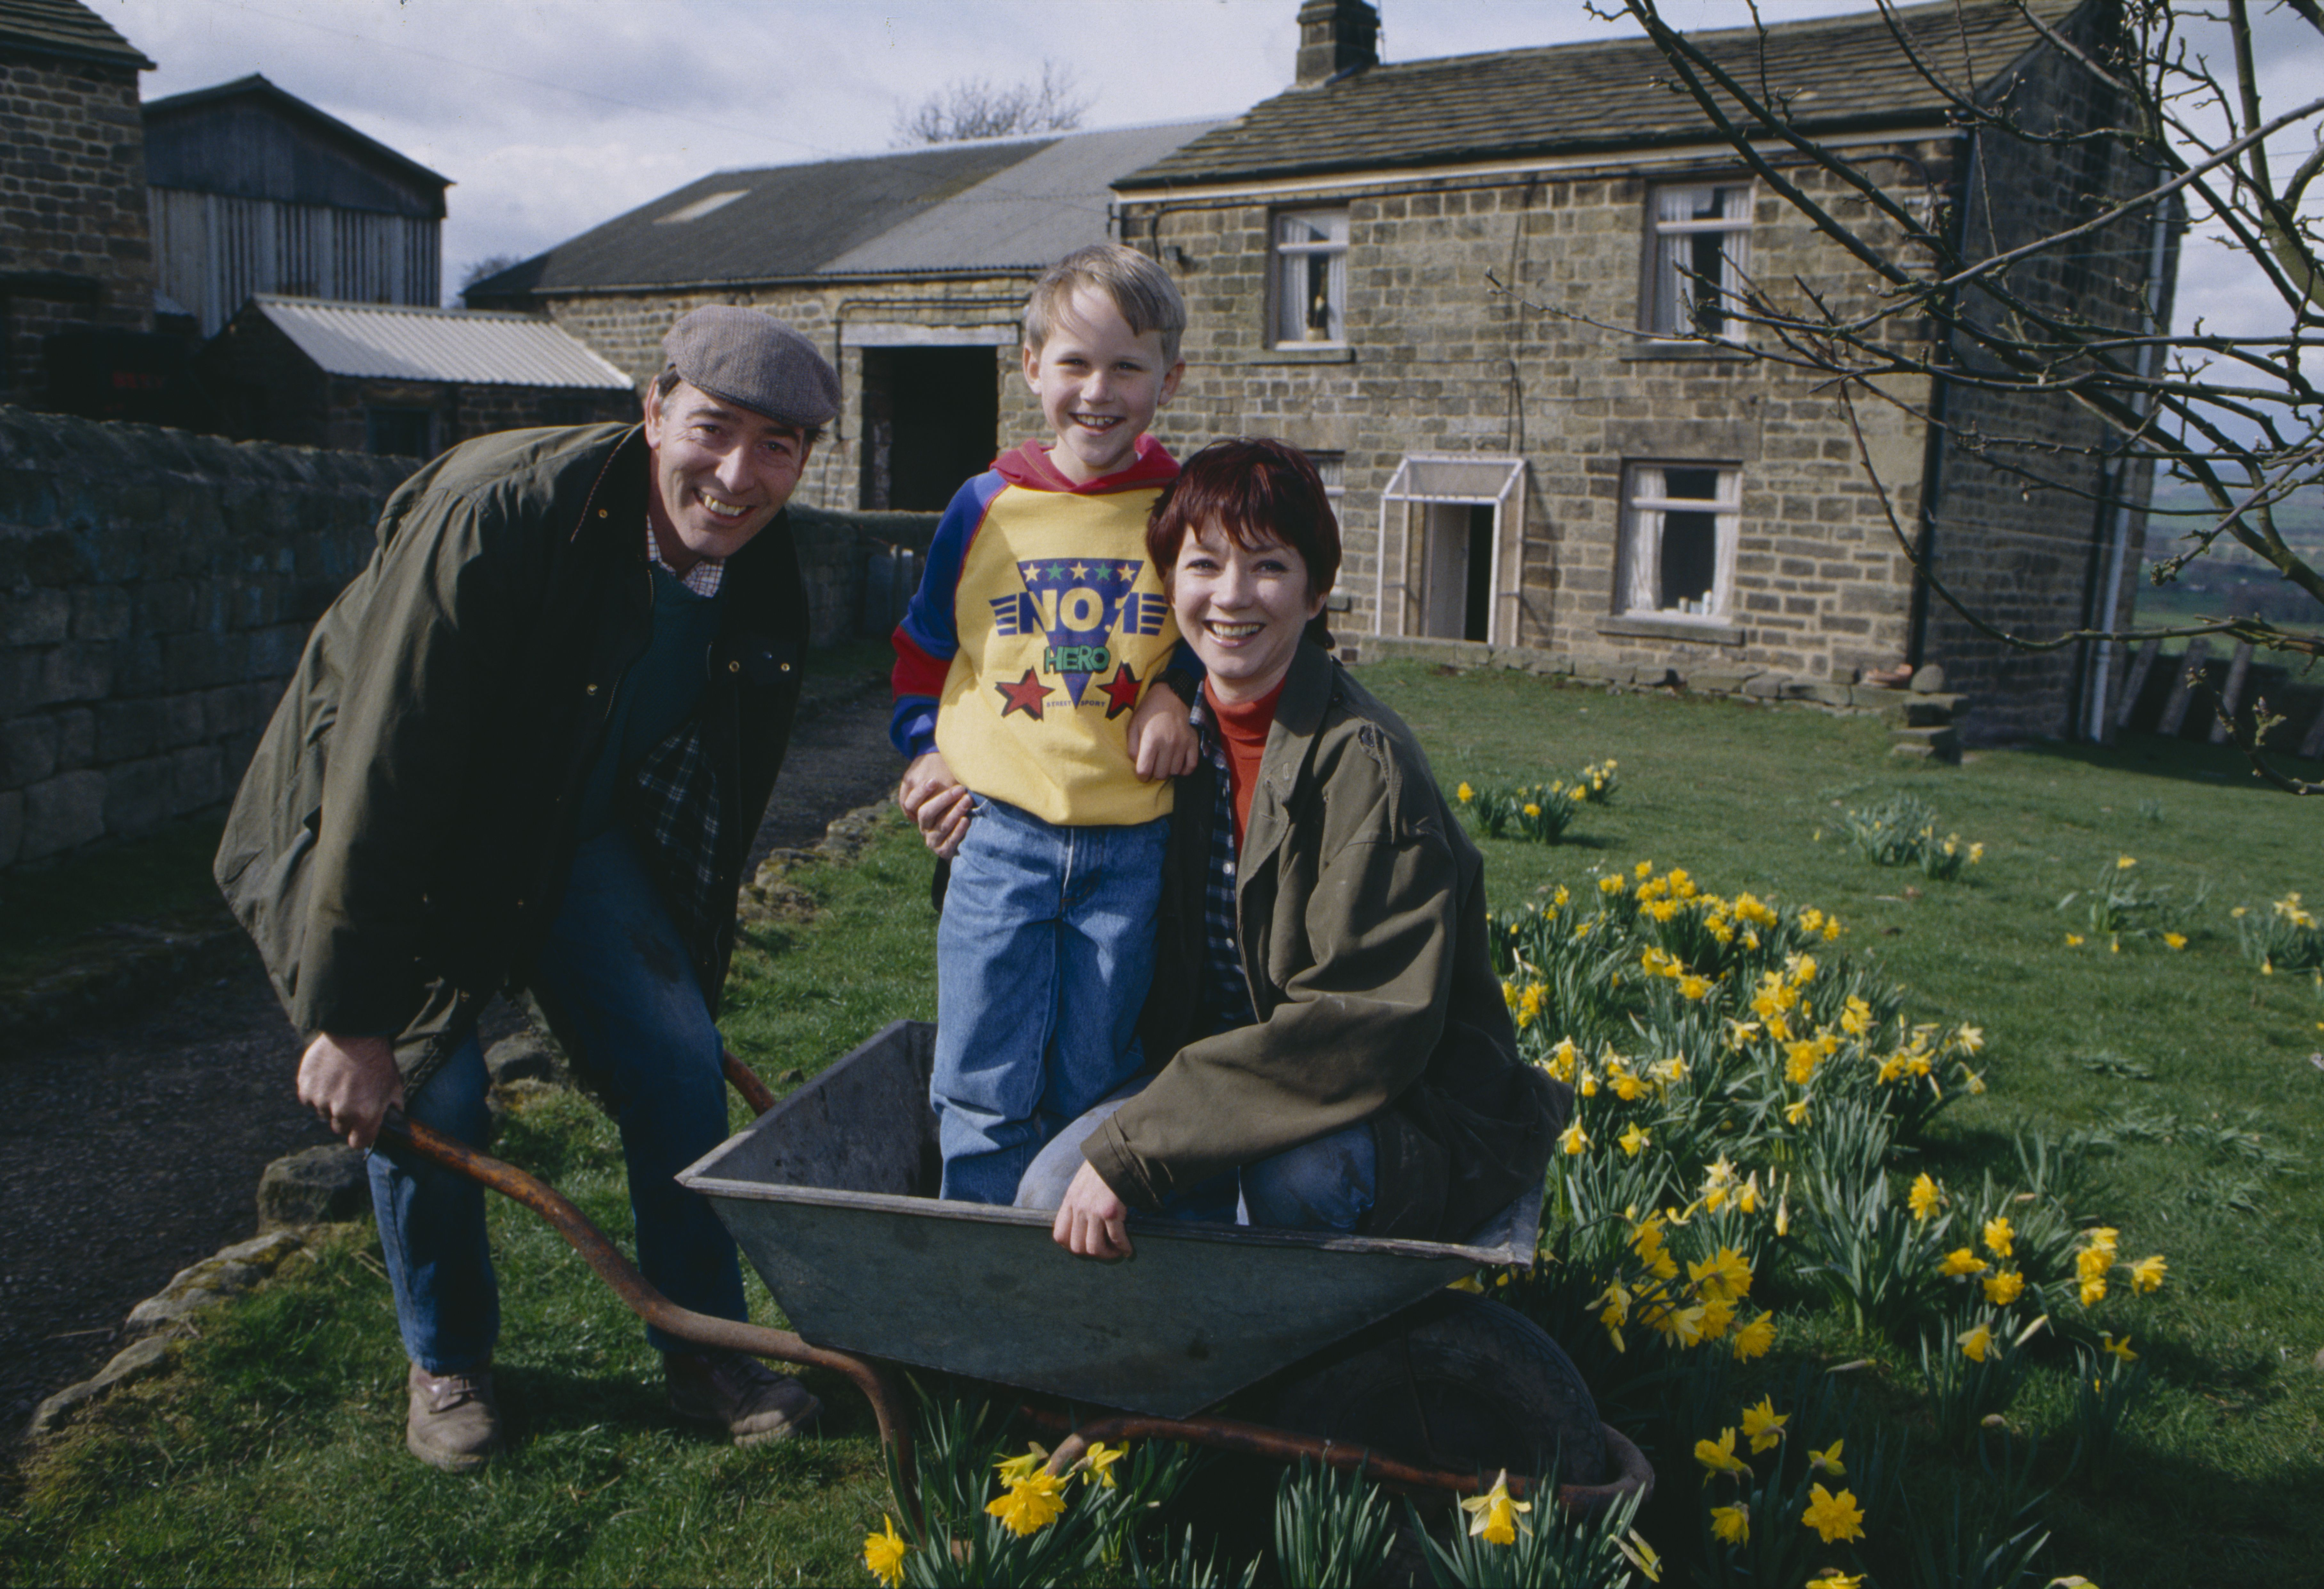 Editorial use only Mandatory Credit: Photo by ITV/Shutterstock (8105575l) Madeleine Howard (as Sarah Connolly), Christopher Smith (as Robert Sugden) and Clive Hornby (as Jack Sugden) as the Sugdens move into Hawthorn Cottage farm (Ep 1758 - 22nd April 1993) 'Emmerdale' TV Series - - 22 Apr 1993 Emmerdale Farm is a long-running British soap opera set in Emmerdale, a fictional village in the Yorkshire Dales. Created by Kevin Laffan, it first broadcast on 16 October 1972 and produced by ITV Yorkshire.